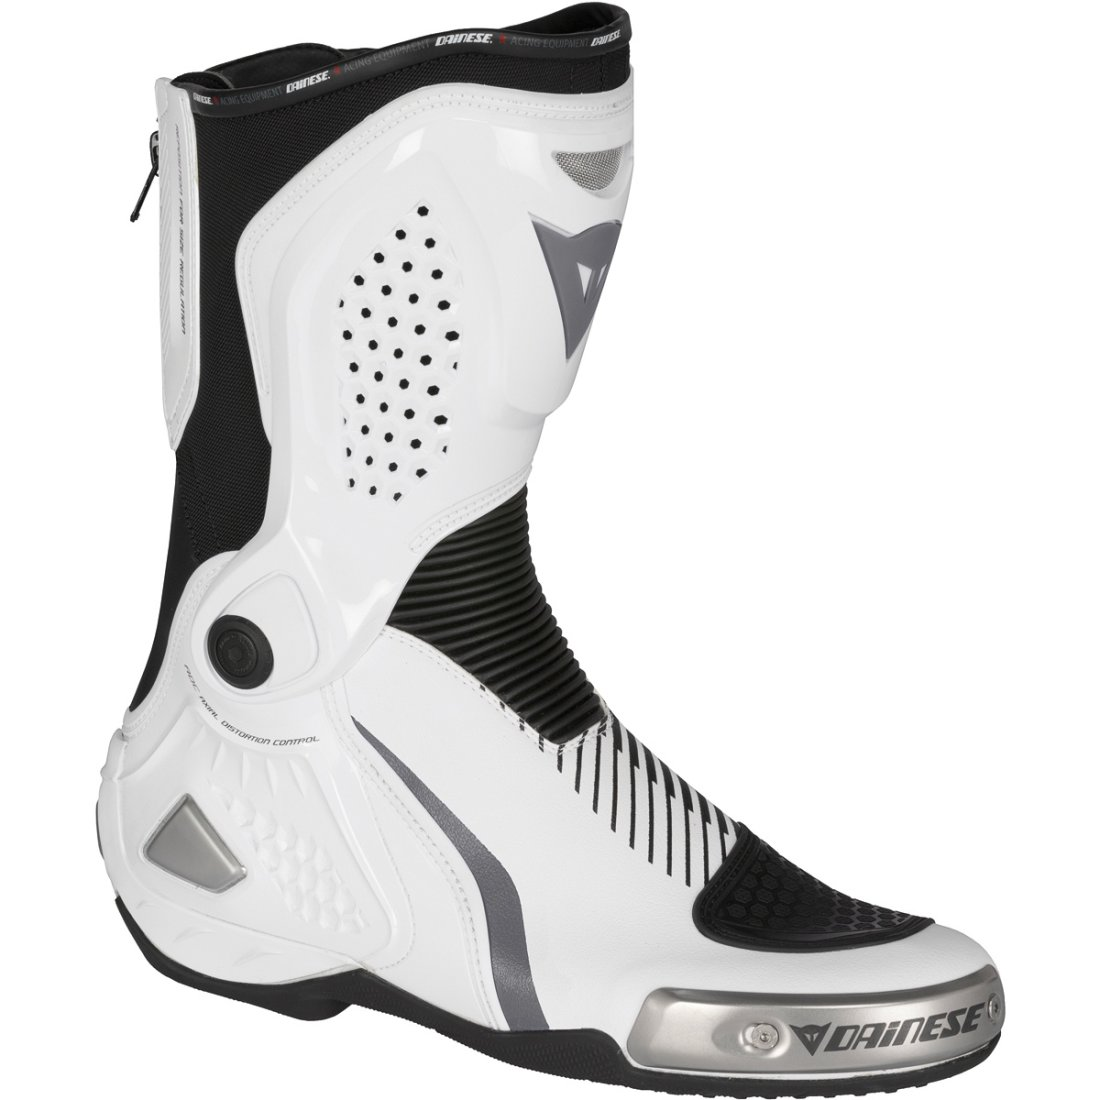 Stiefel DAINESE Torque RS Out White Black Anthracite